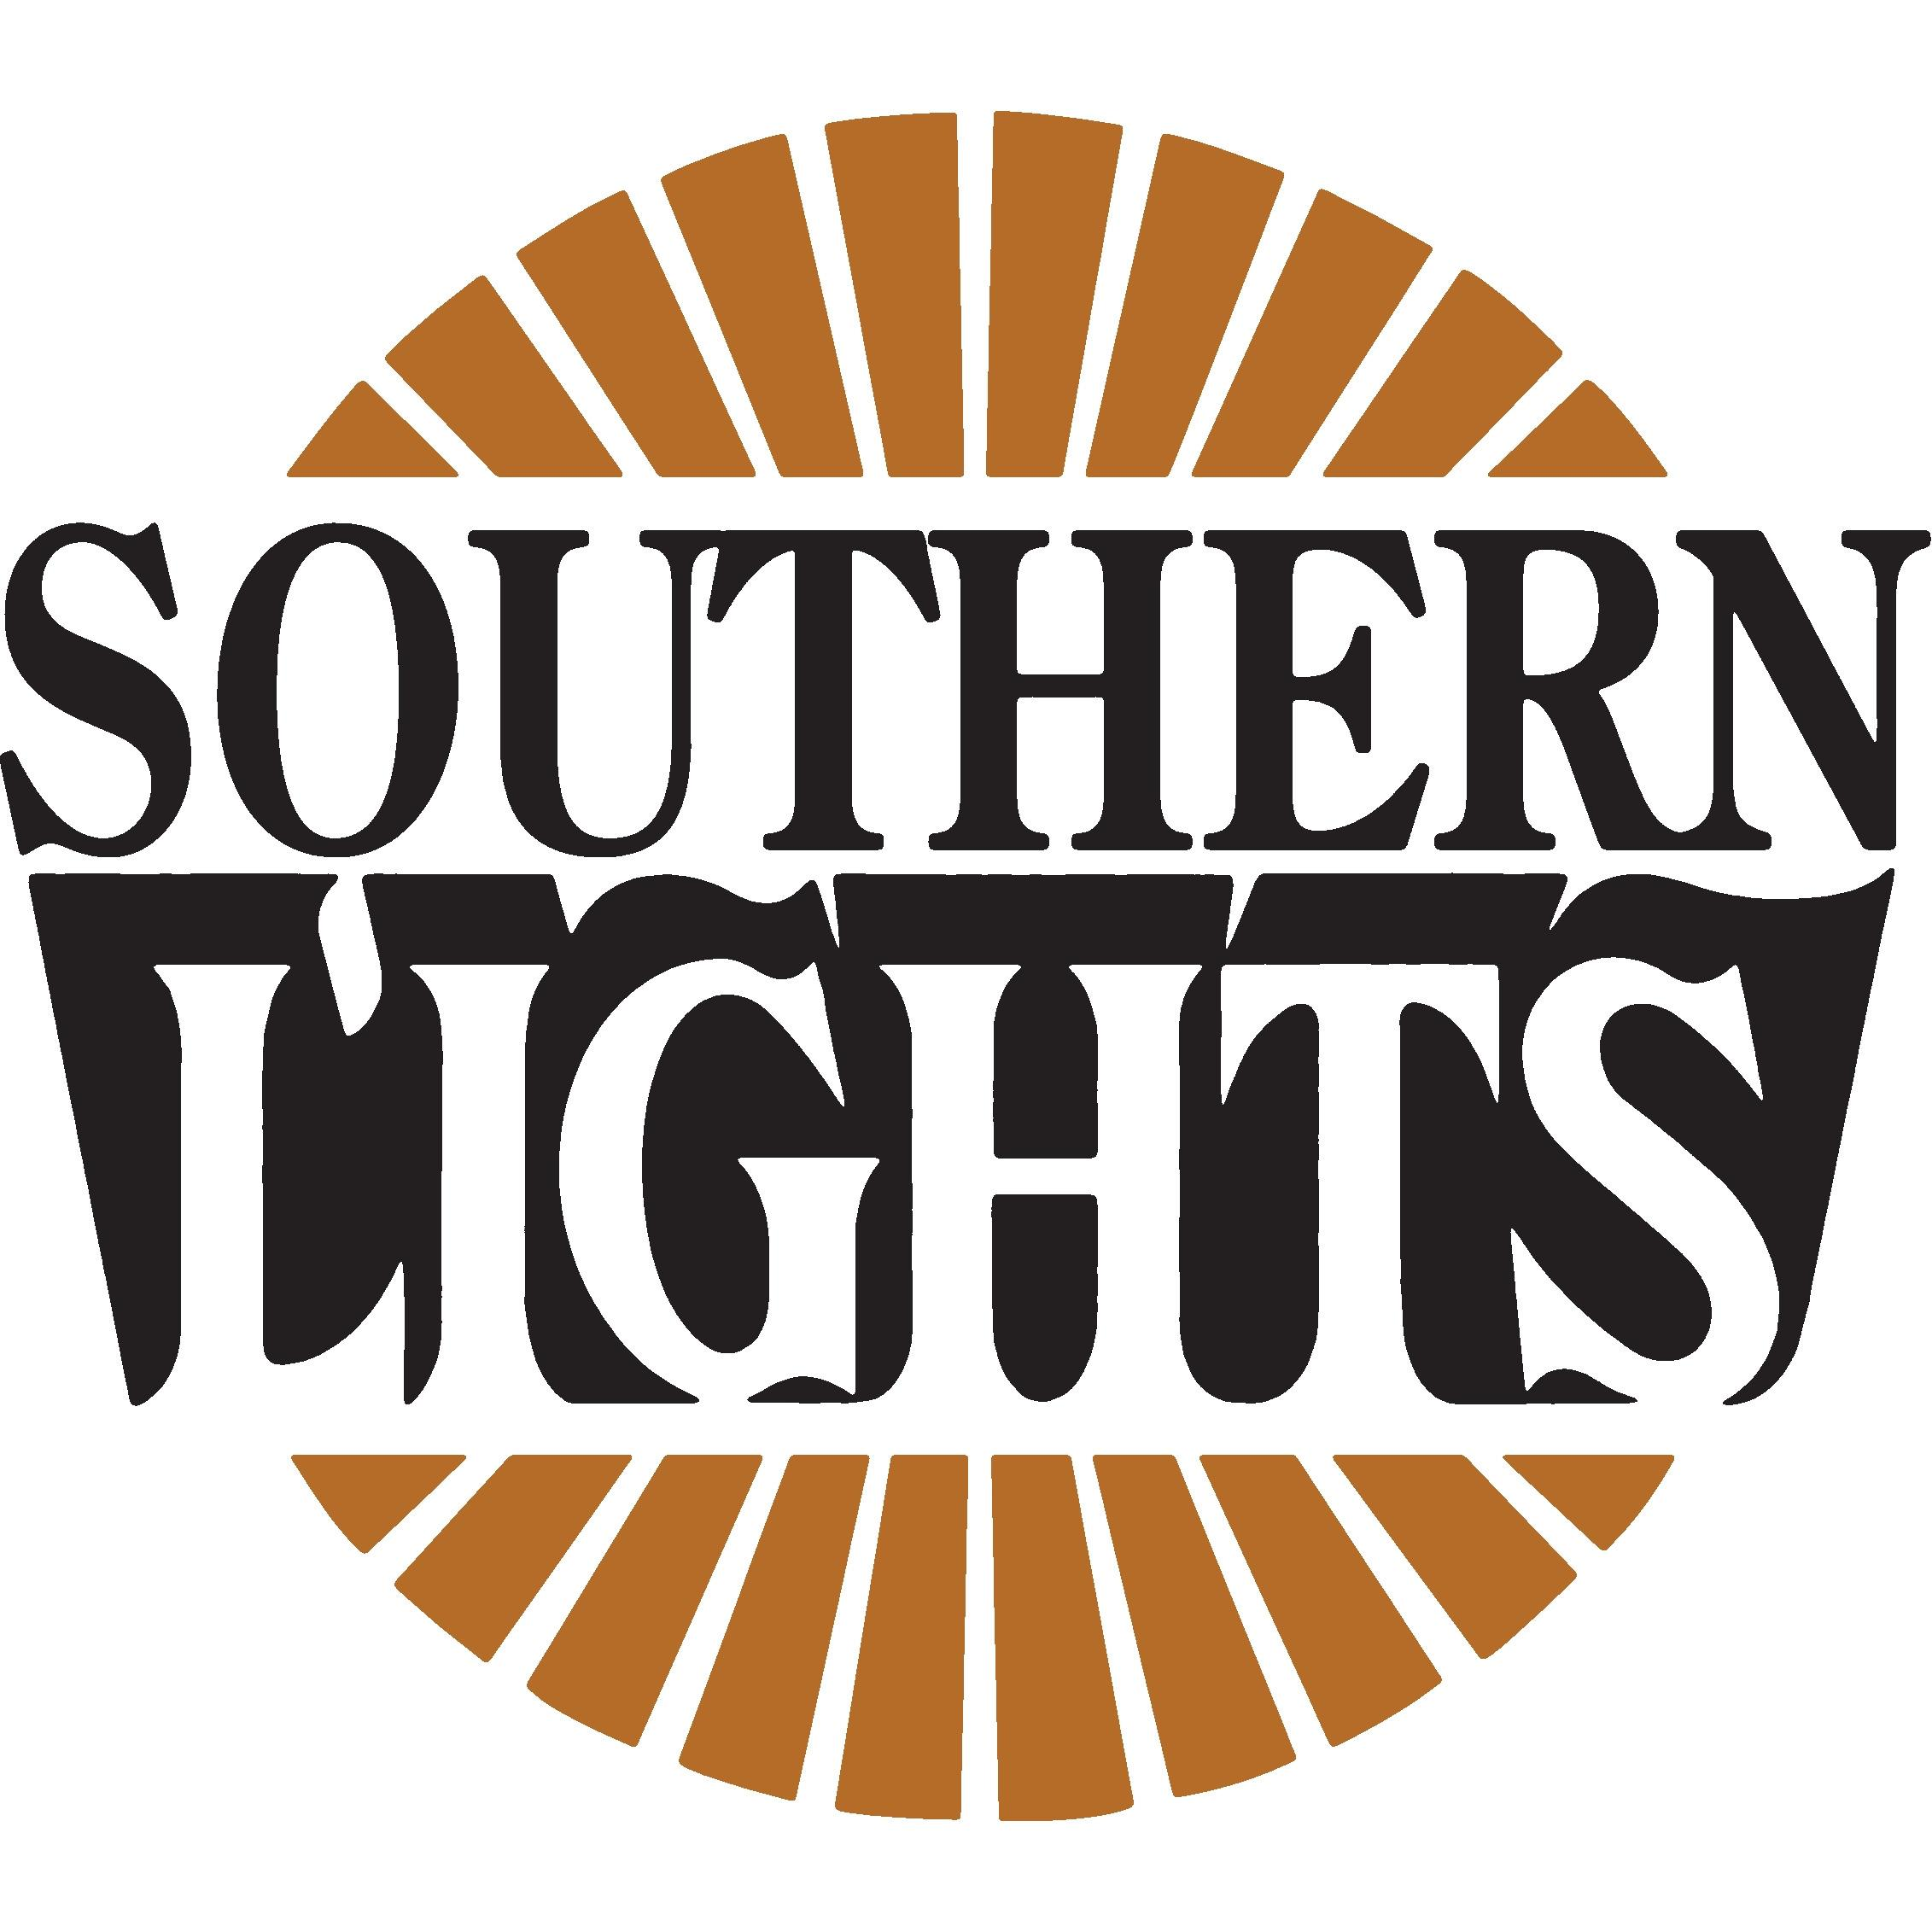 Southern Lights clipart #15, Download drawings